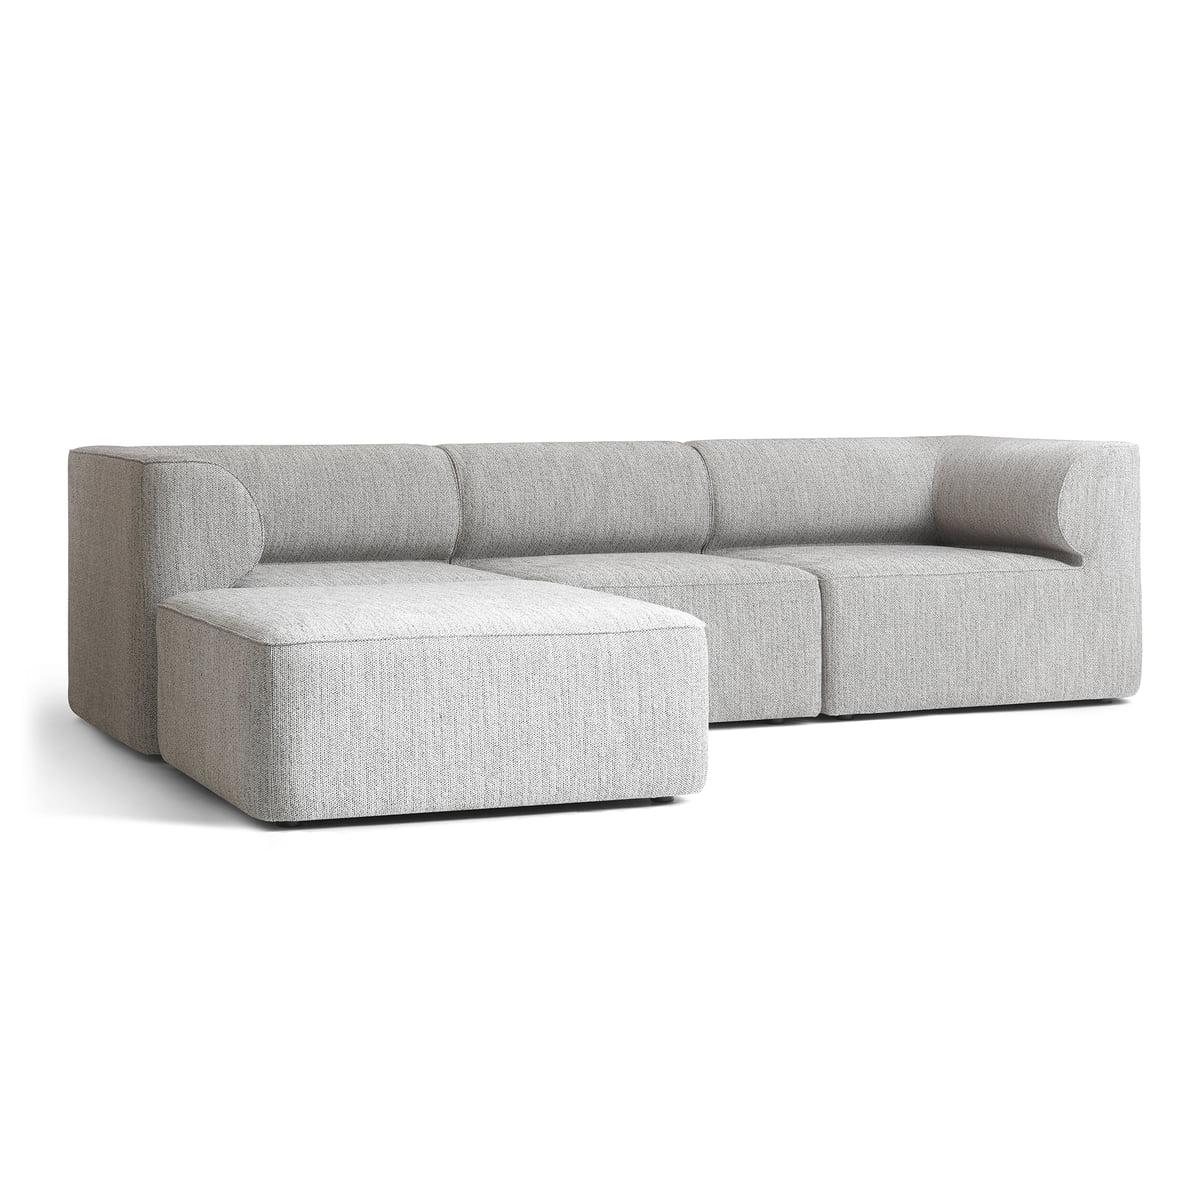 Sofa Modular 3id6 Eave Modular sofa by Menu Connox